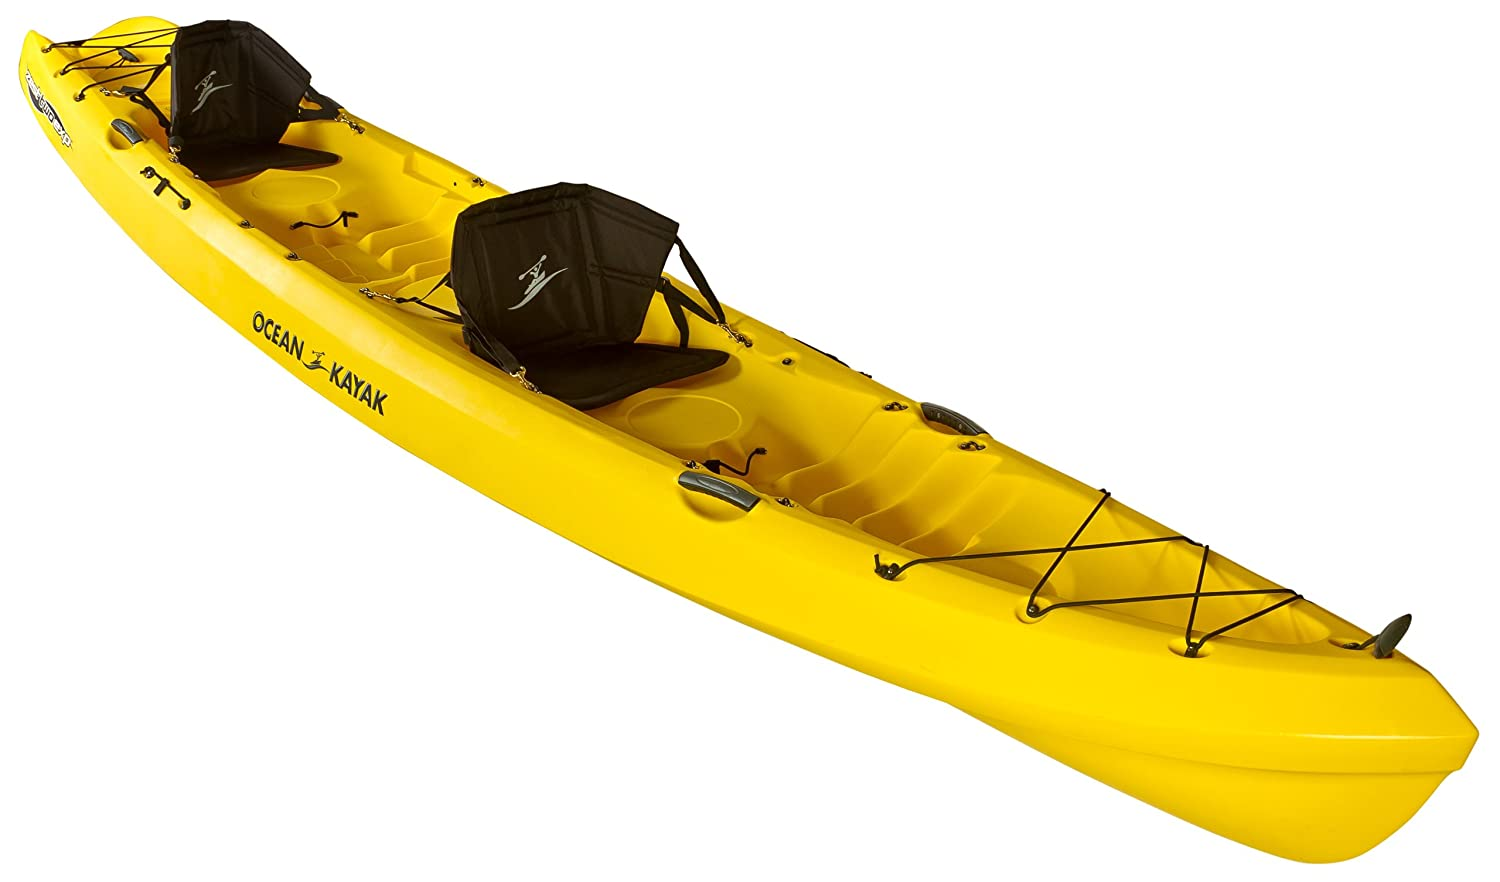 Amazon Ocean Kayak 16 Feet X 45 Inch Zest Two Expedition Tandem Sit On Top Touring Sunrise Sports Outdoors